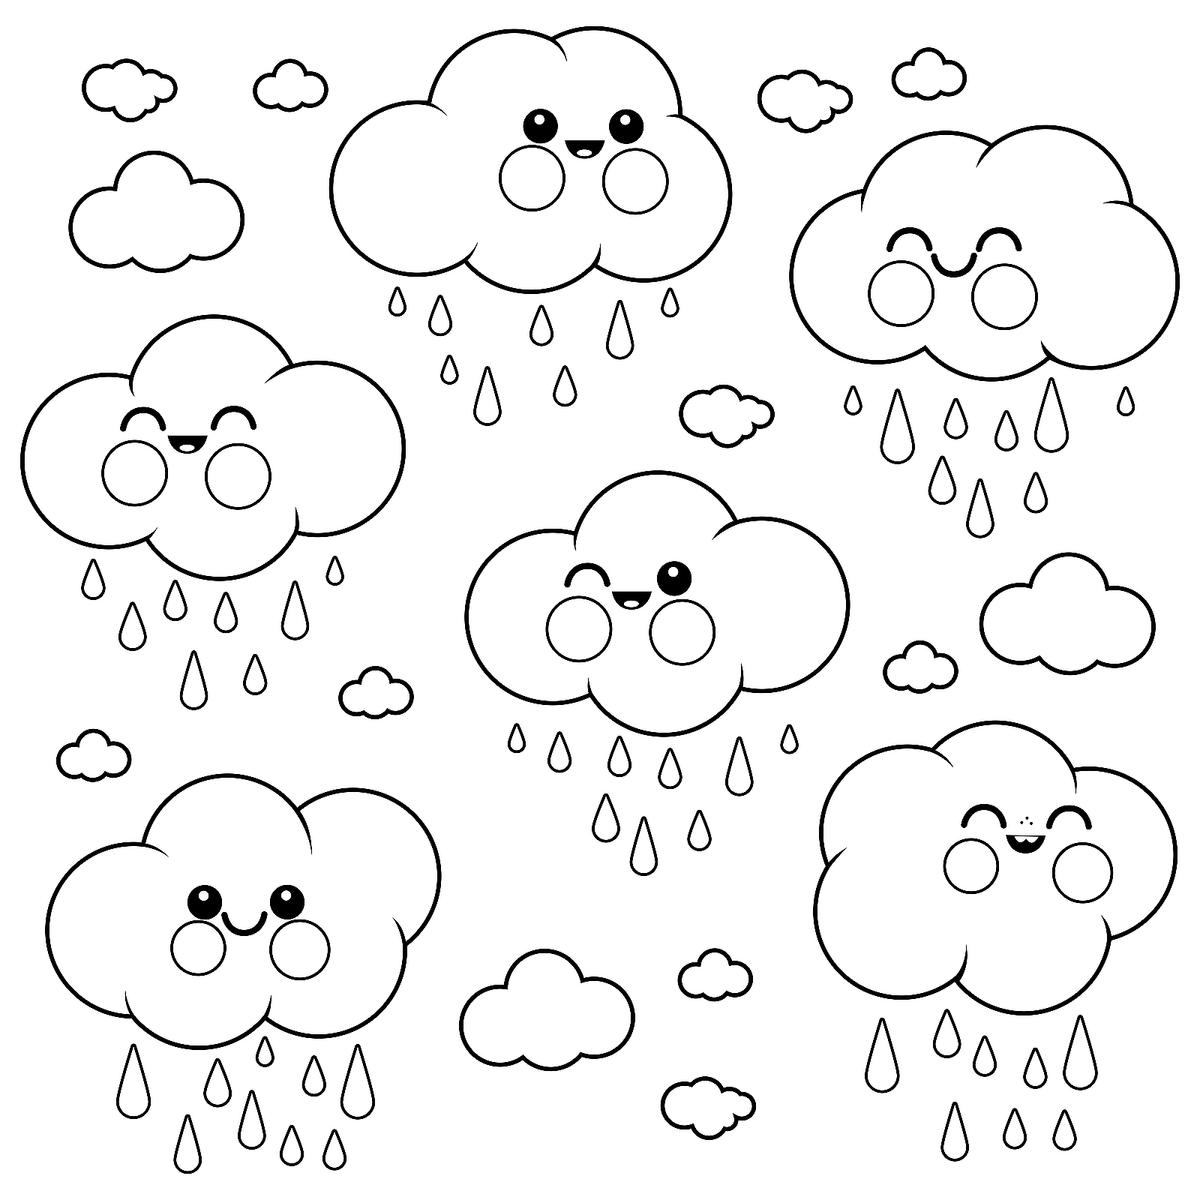 Weather Coloring Pages For Kids Fun Free Printable Coloring Pages Of Weather Events From Hurricanes To Sunny Days Printables 30seconds Mom